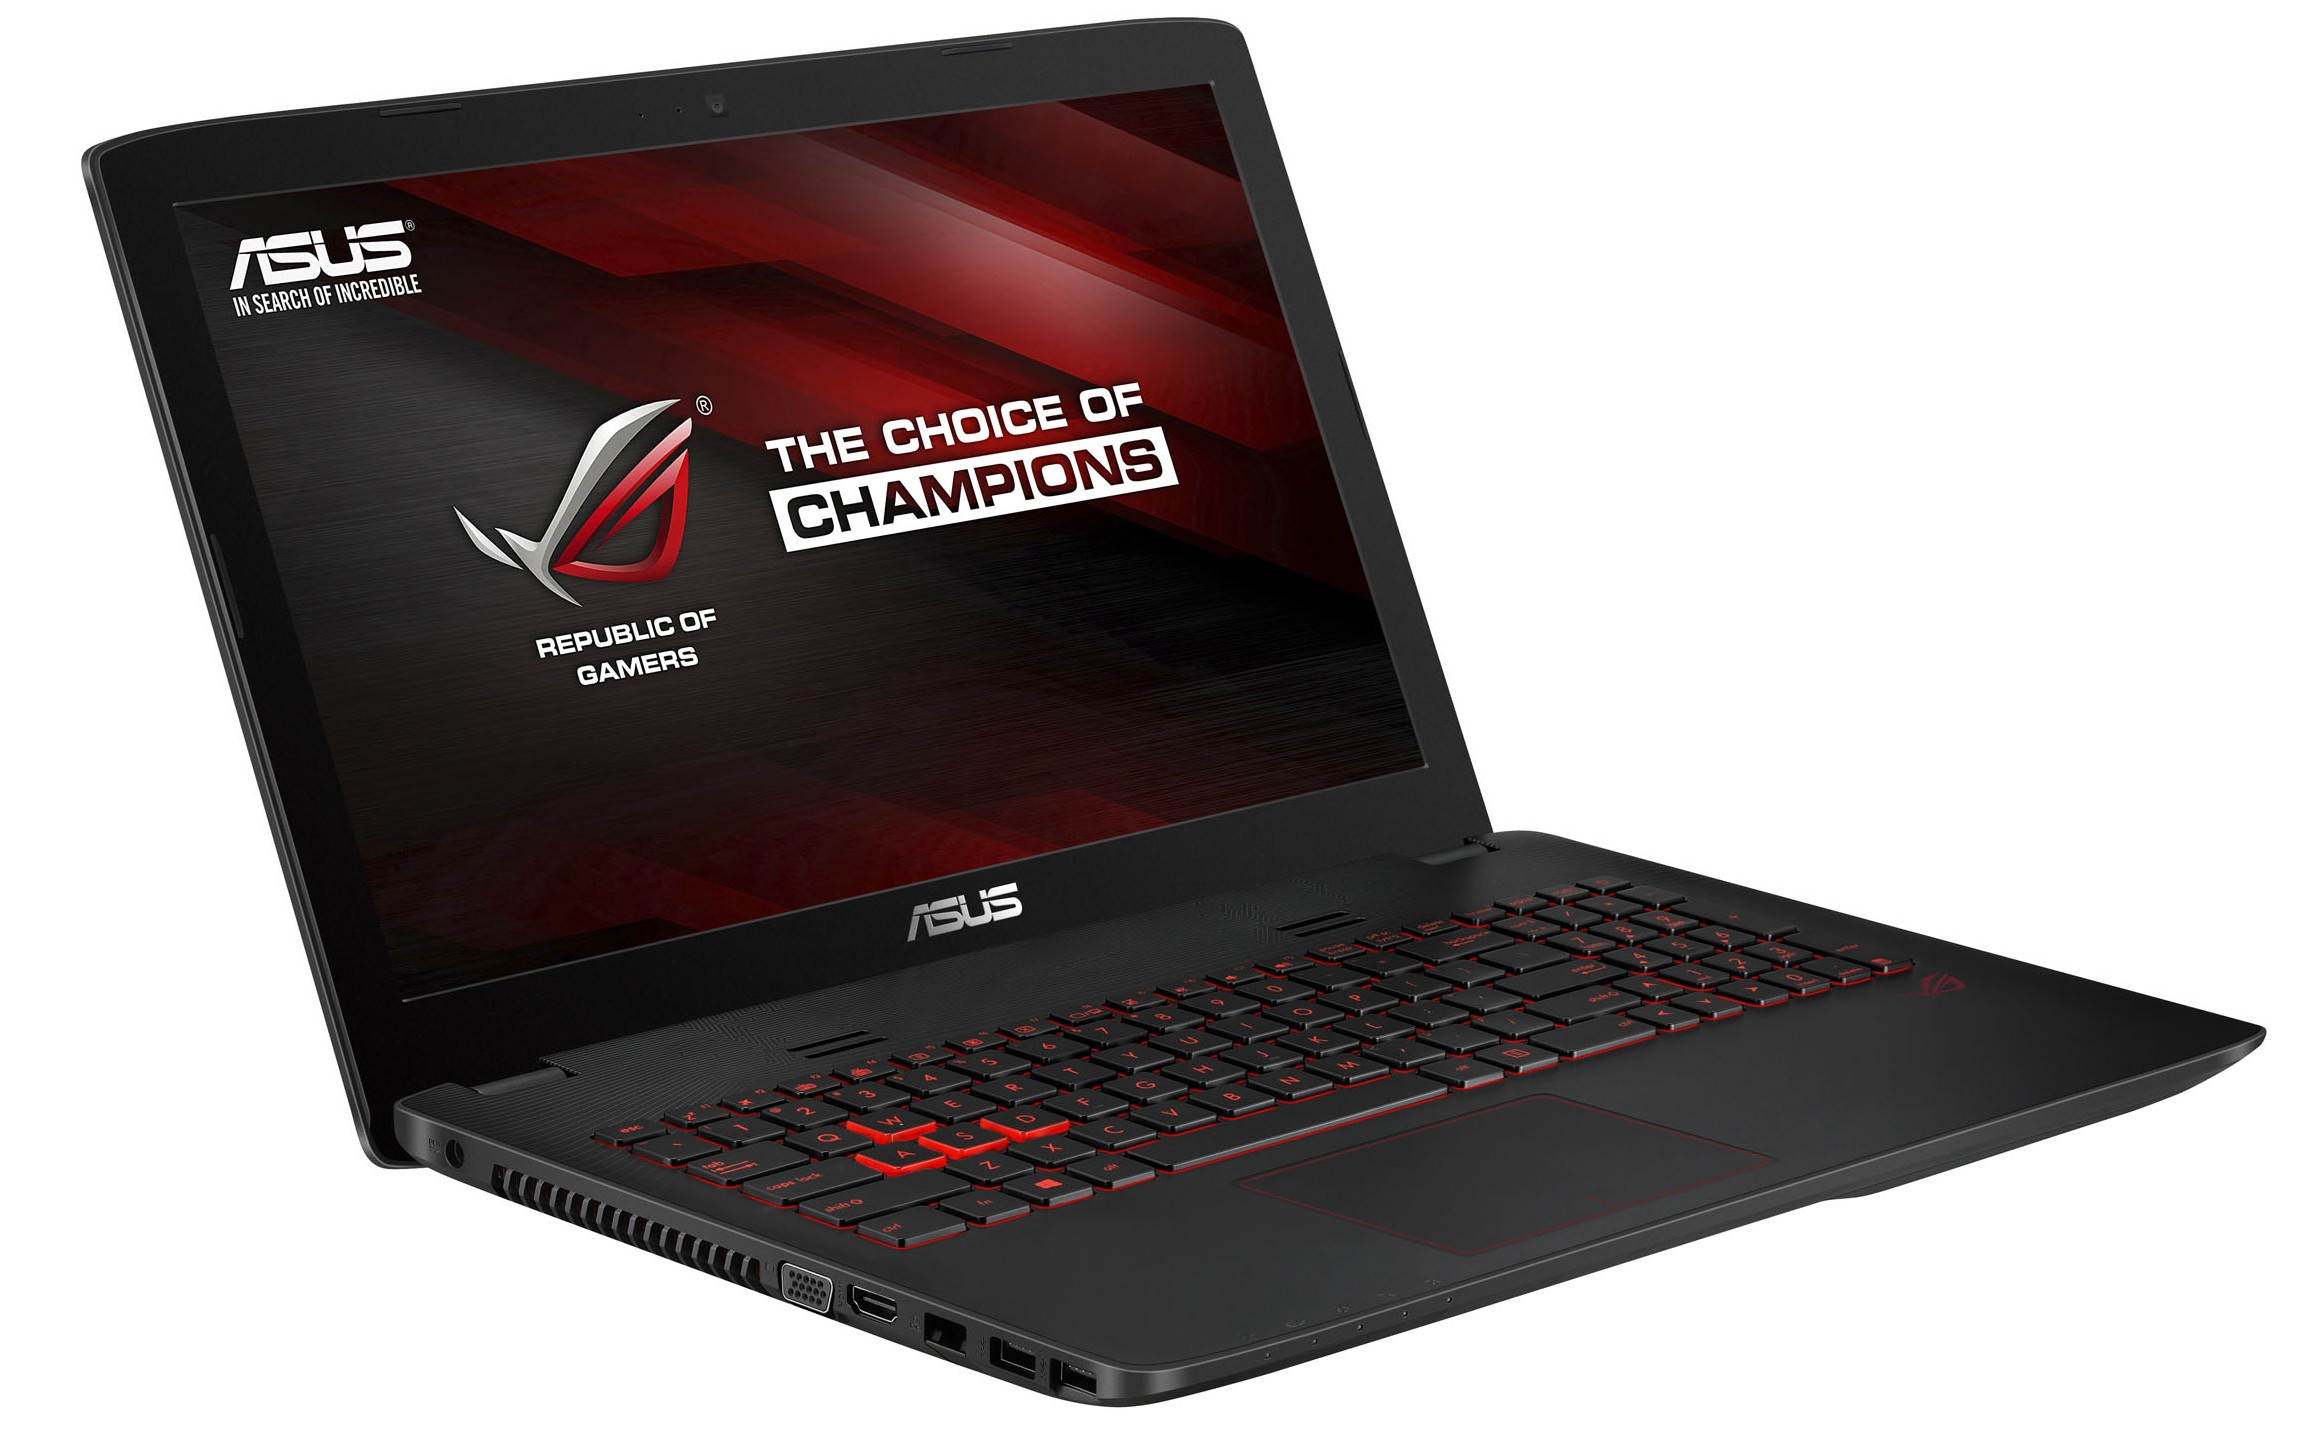 ASUS GL552JX NVIDIA GRAPHICS DRIVER FOR WINDOWS 10